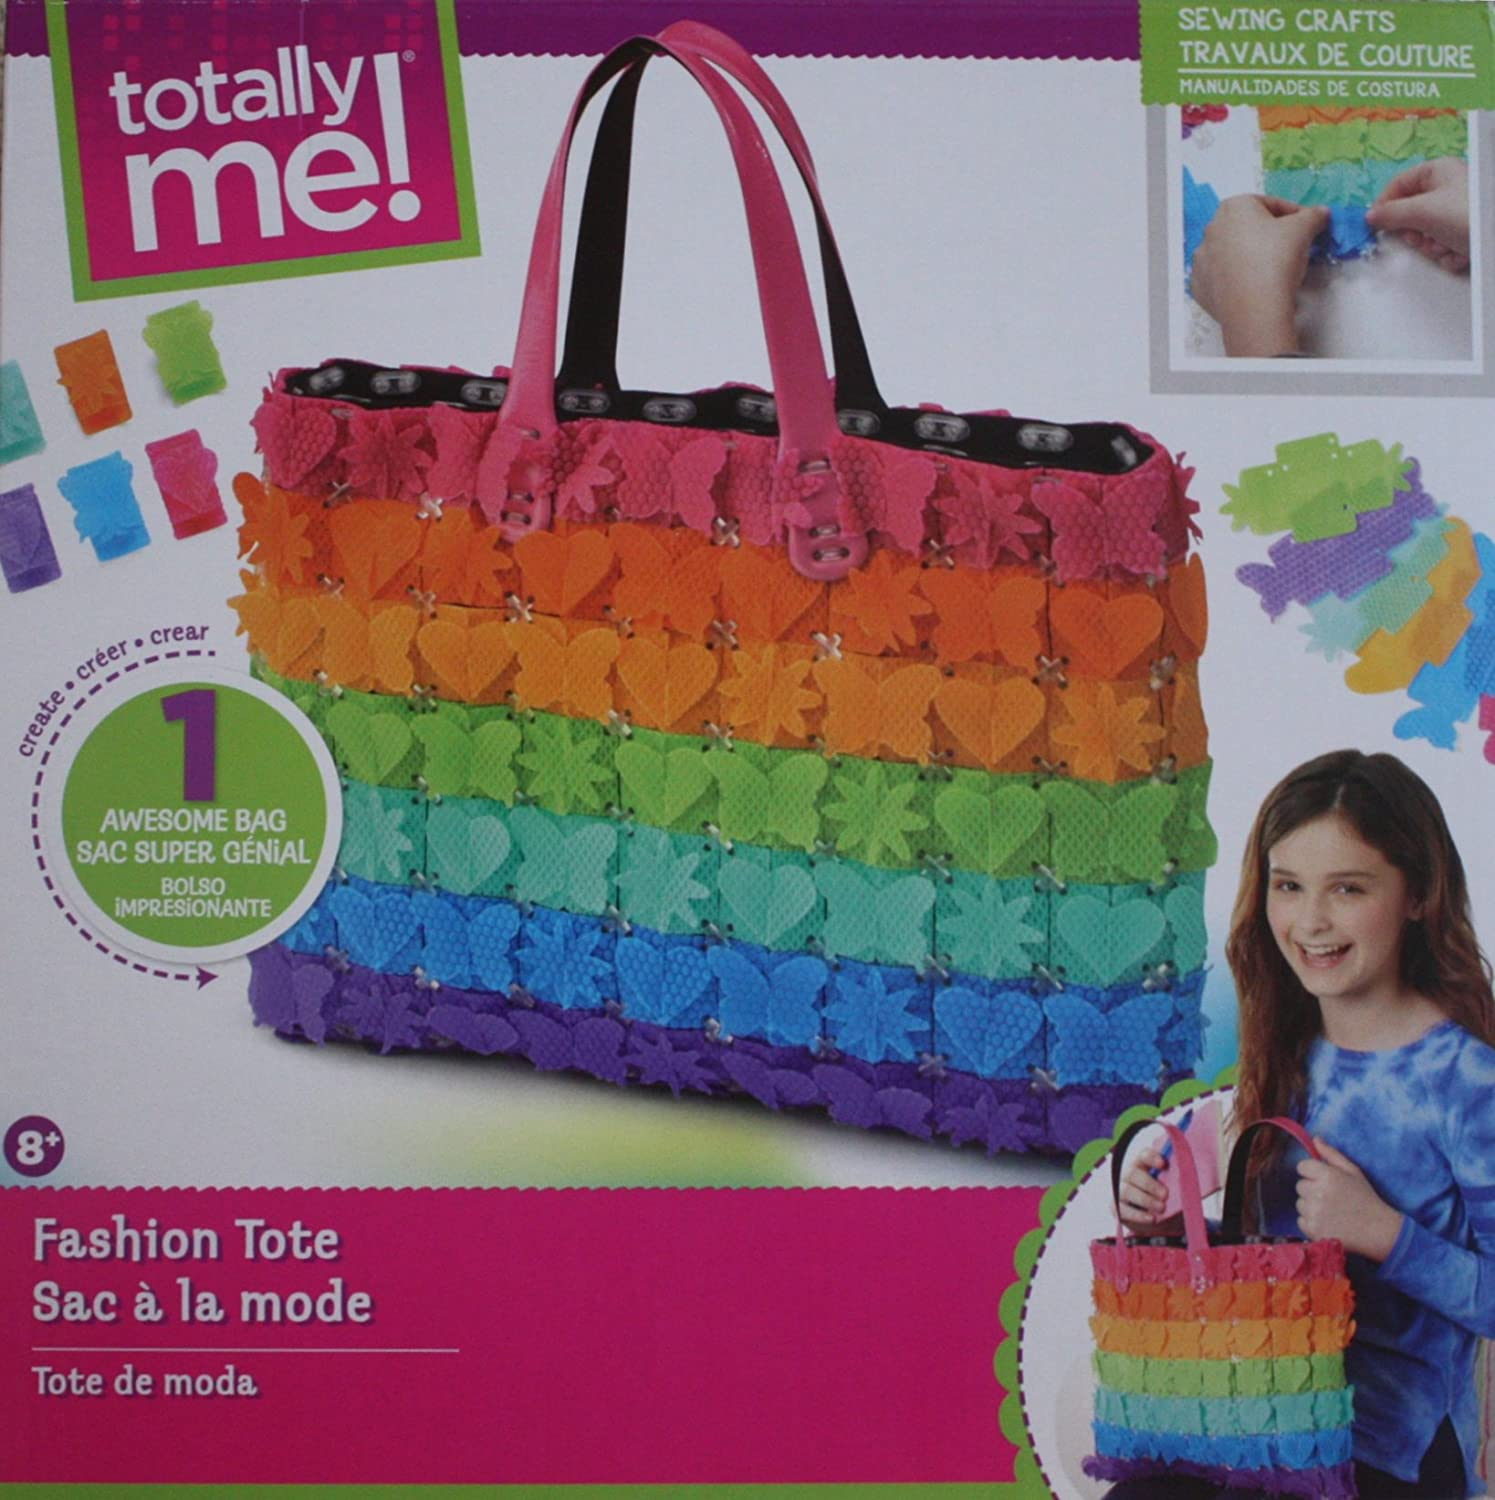 Totally Me! Fashion Tote Sewing Craft